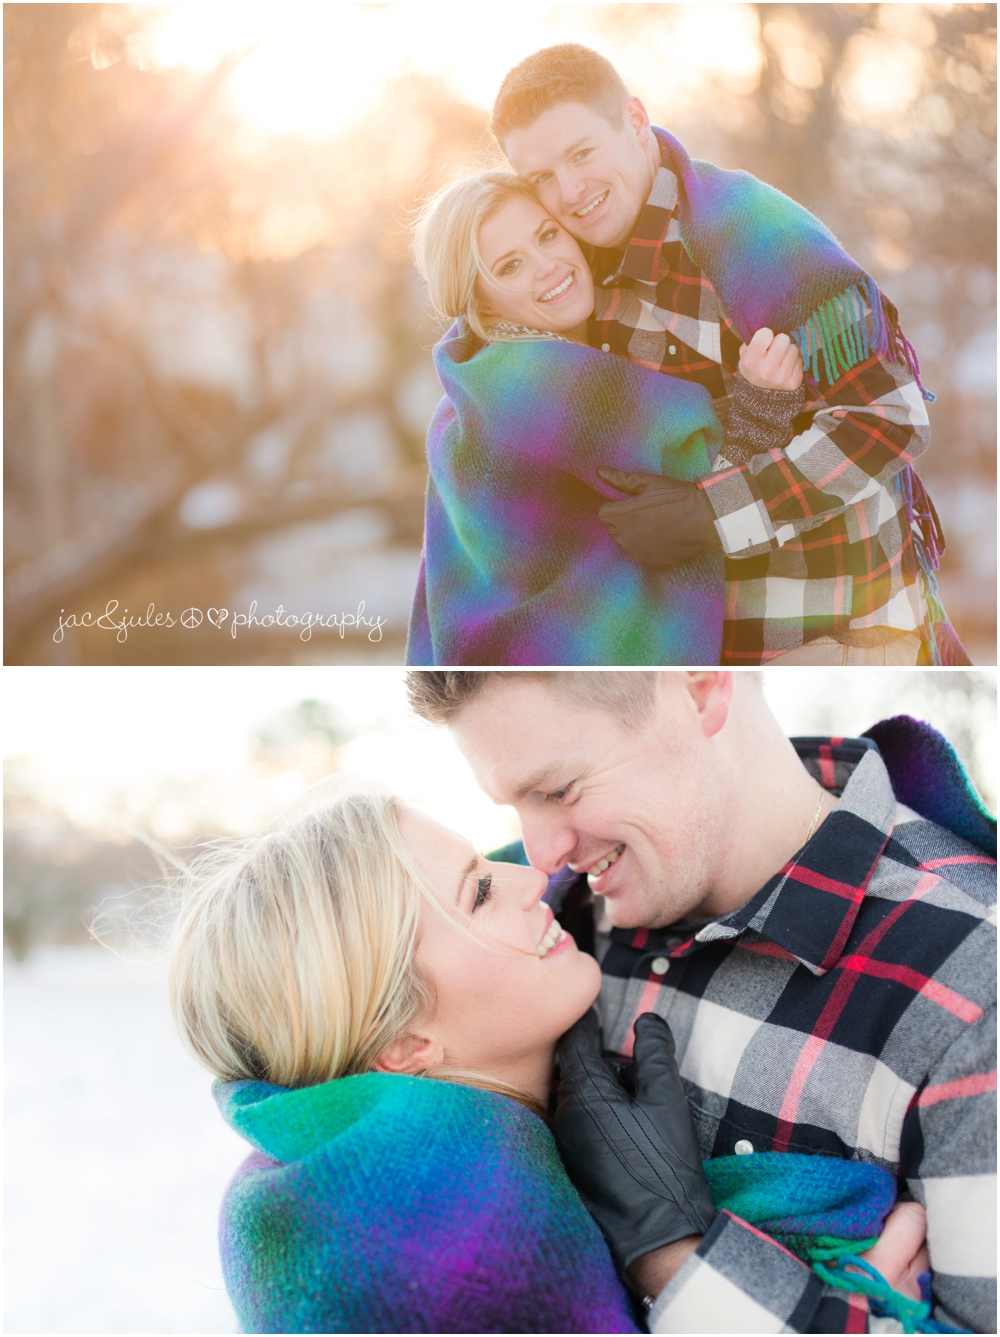 jacnjules-photographs-winter-engagement-spring-lake-nj-divine-park-photo